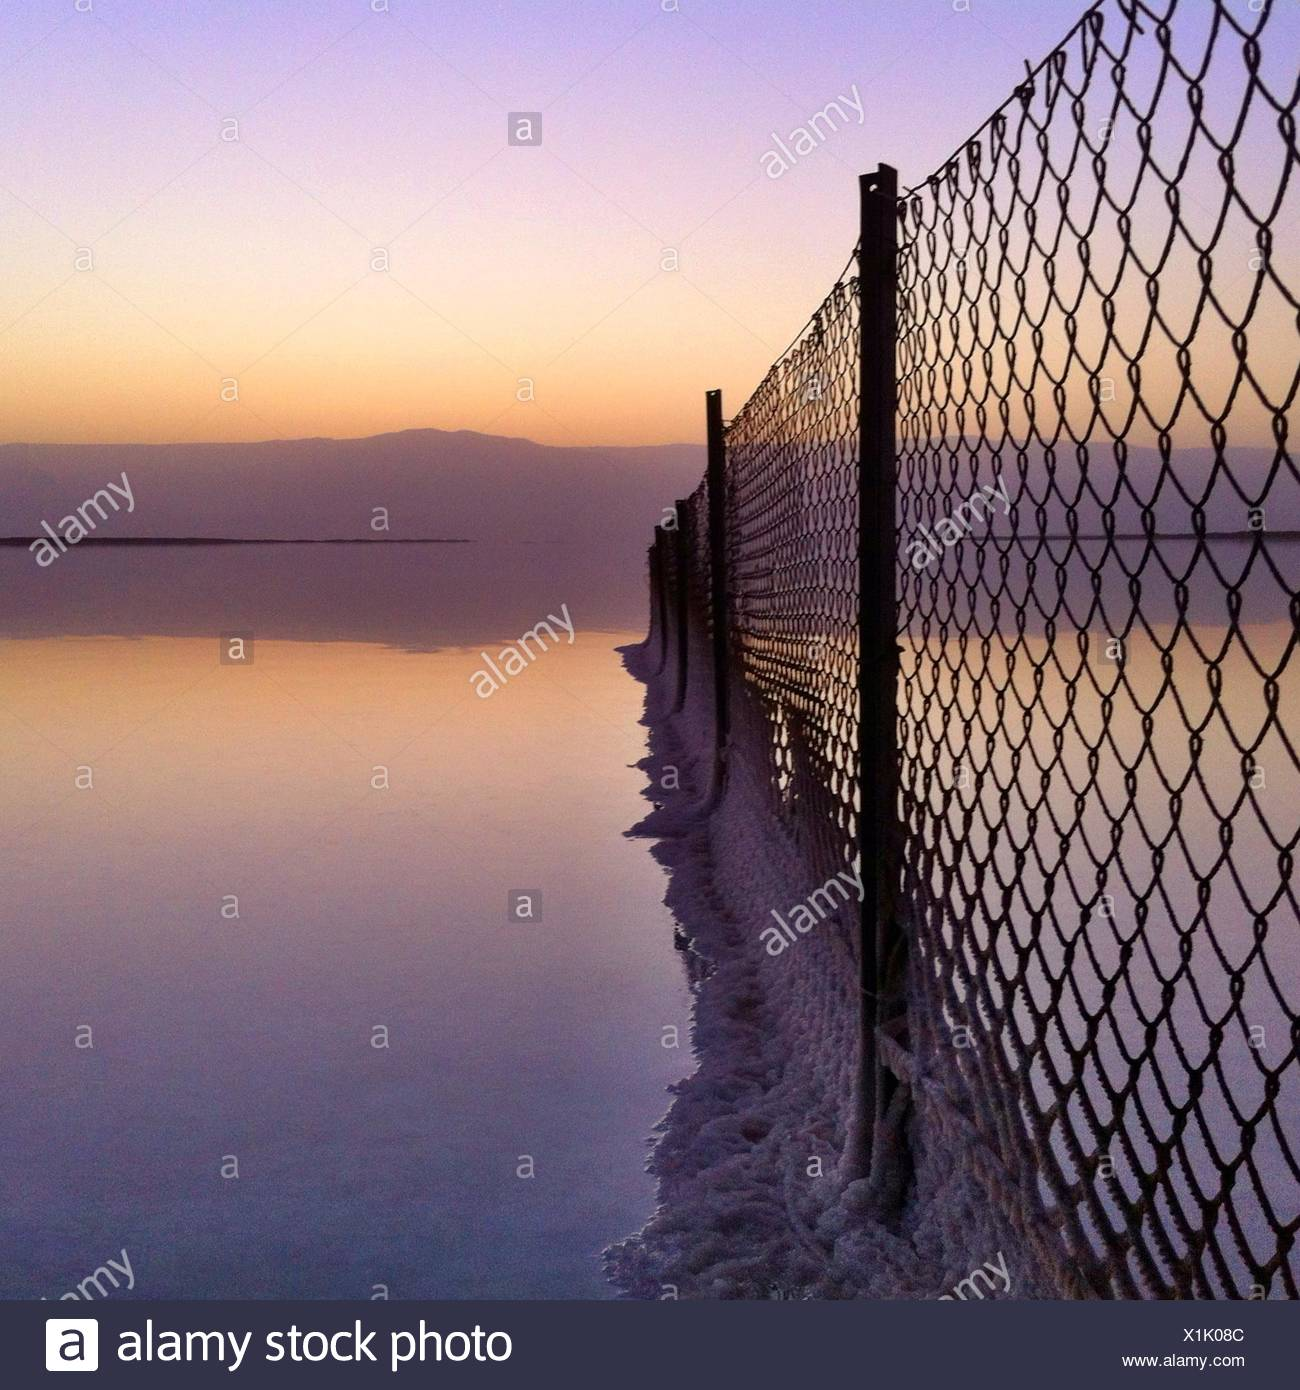 Salt deposits on fence, Dead Sea, Israel - Stock Image